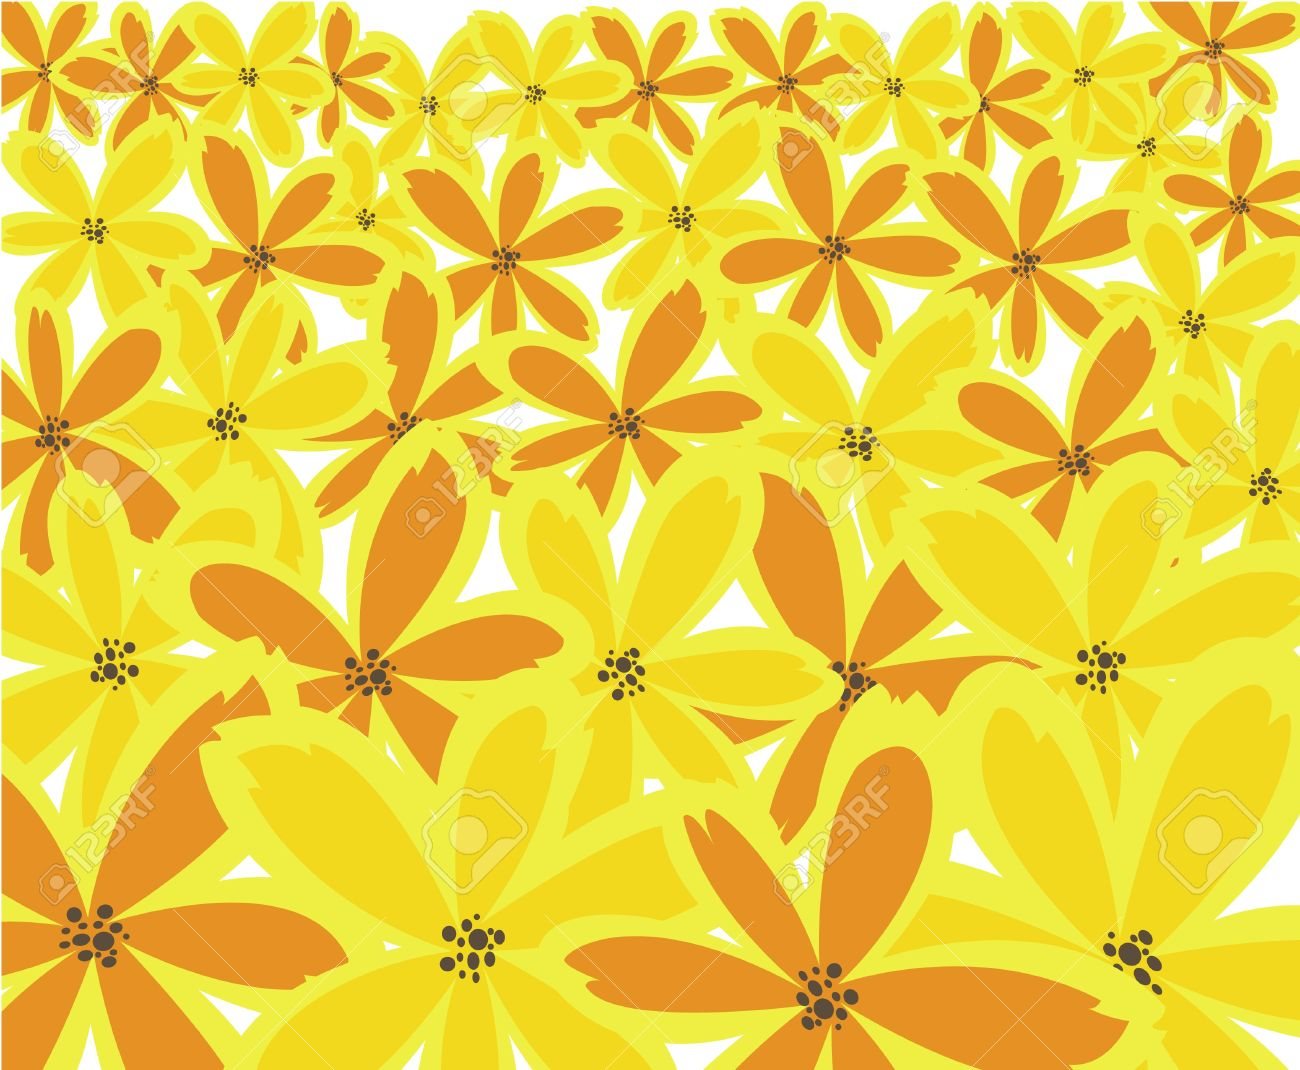 Abstract Floral Background From Orange And Yellow Flowers Royalty